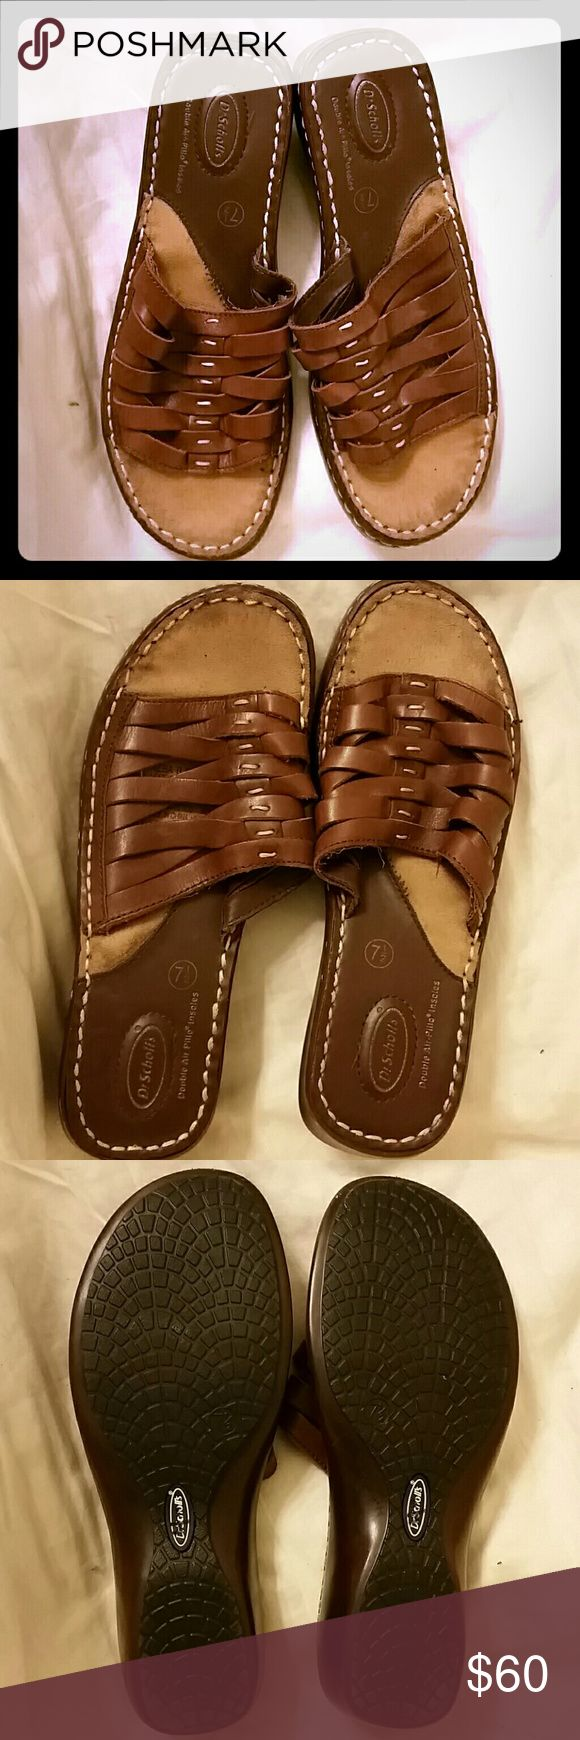 *$3.95s&H* Dr Scholes leather shoes *Bogo sale* Selling for someone else so I do not have info other than they are in good used condition  She is looking at all reasonable offers  Included in bogo sale Dr. Scholl's Shoes Sandals